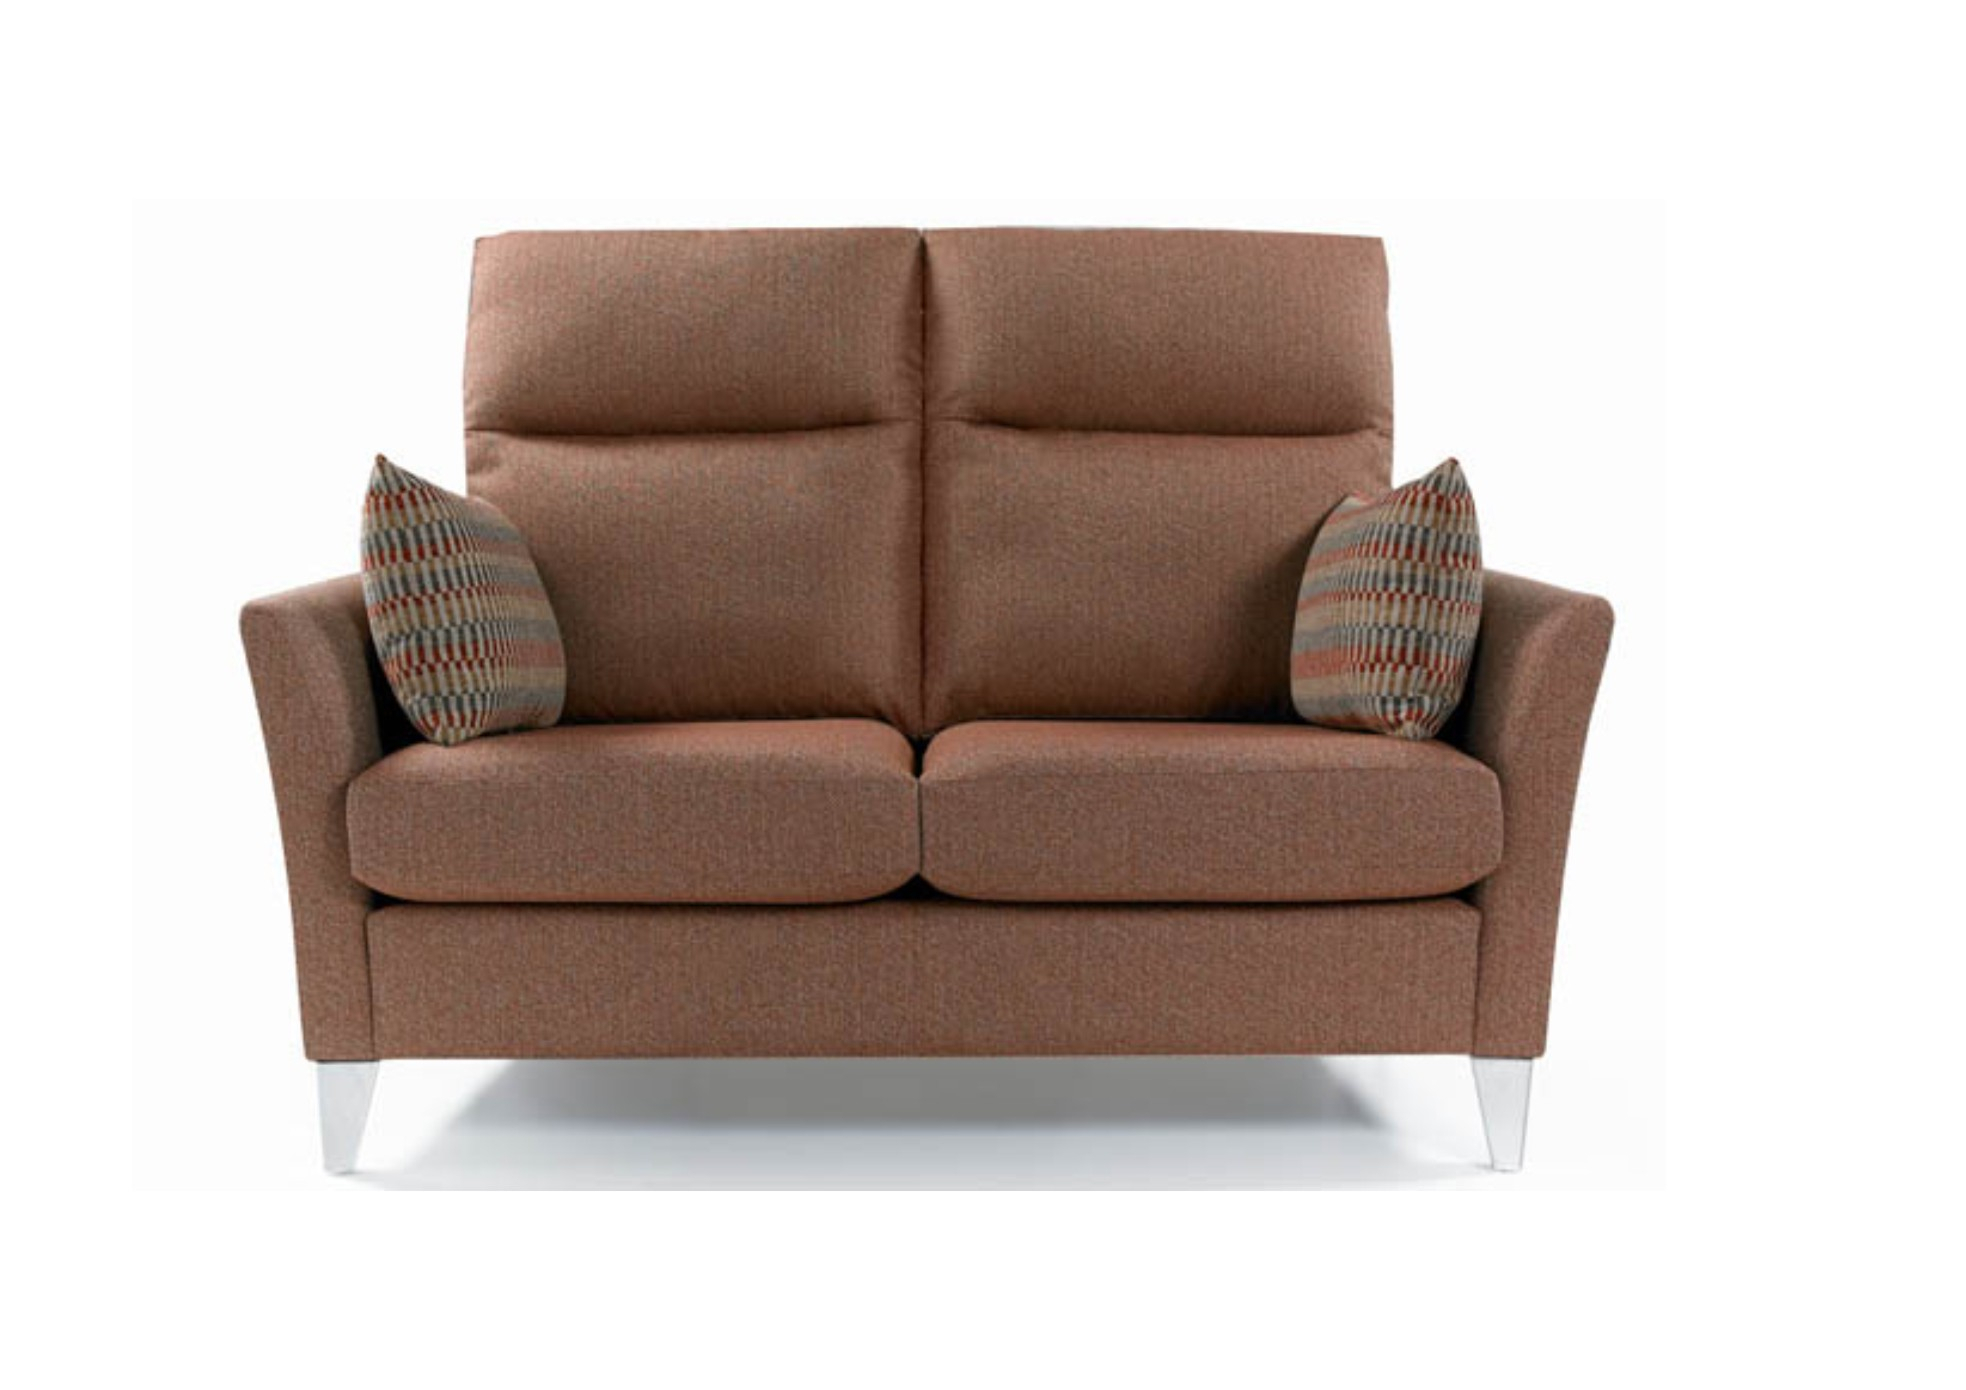 Milo 2 Seater High Back Sofa Contemporary Styling With Luxurious Comfort Regarding Milo Sofa Chairs (Photo 11 of 20)